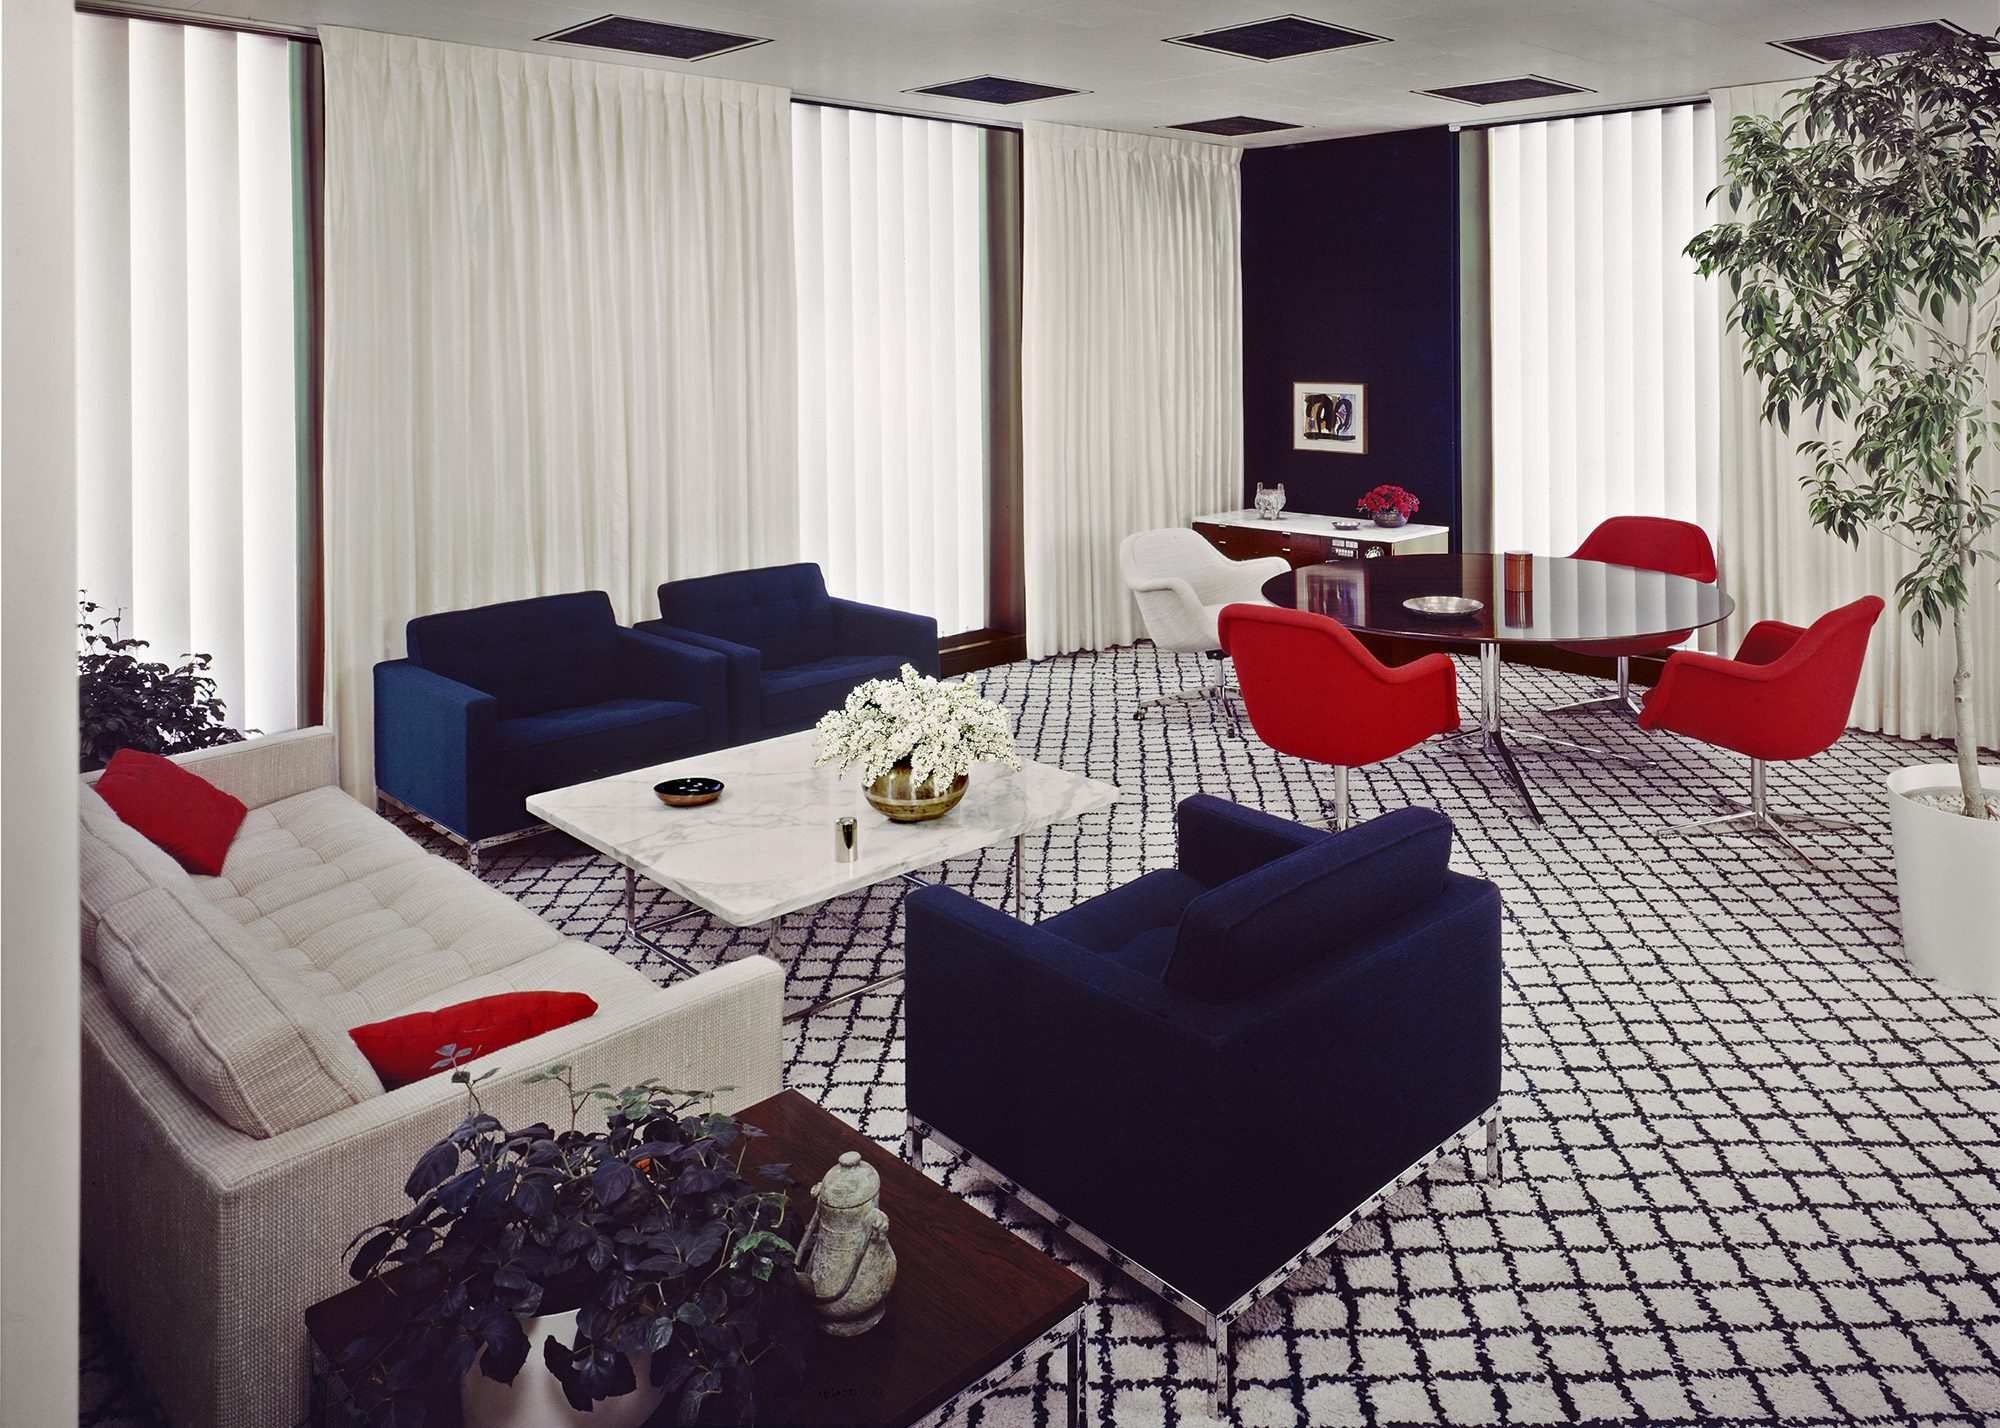 florence knoll bassett pioneering women of american architecture